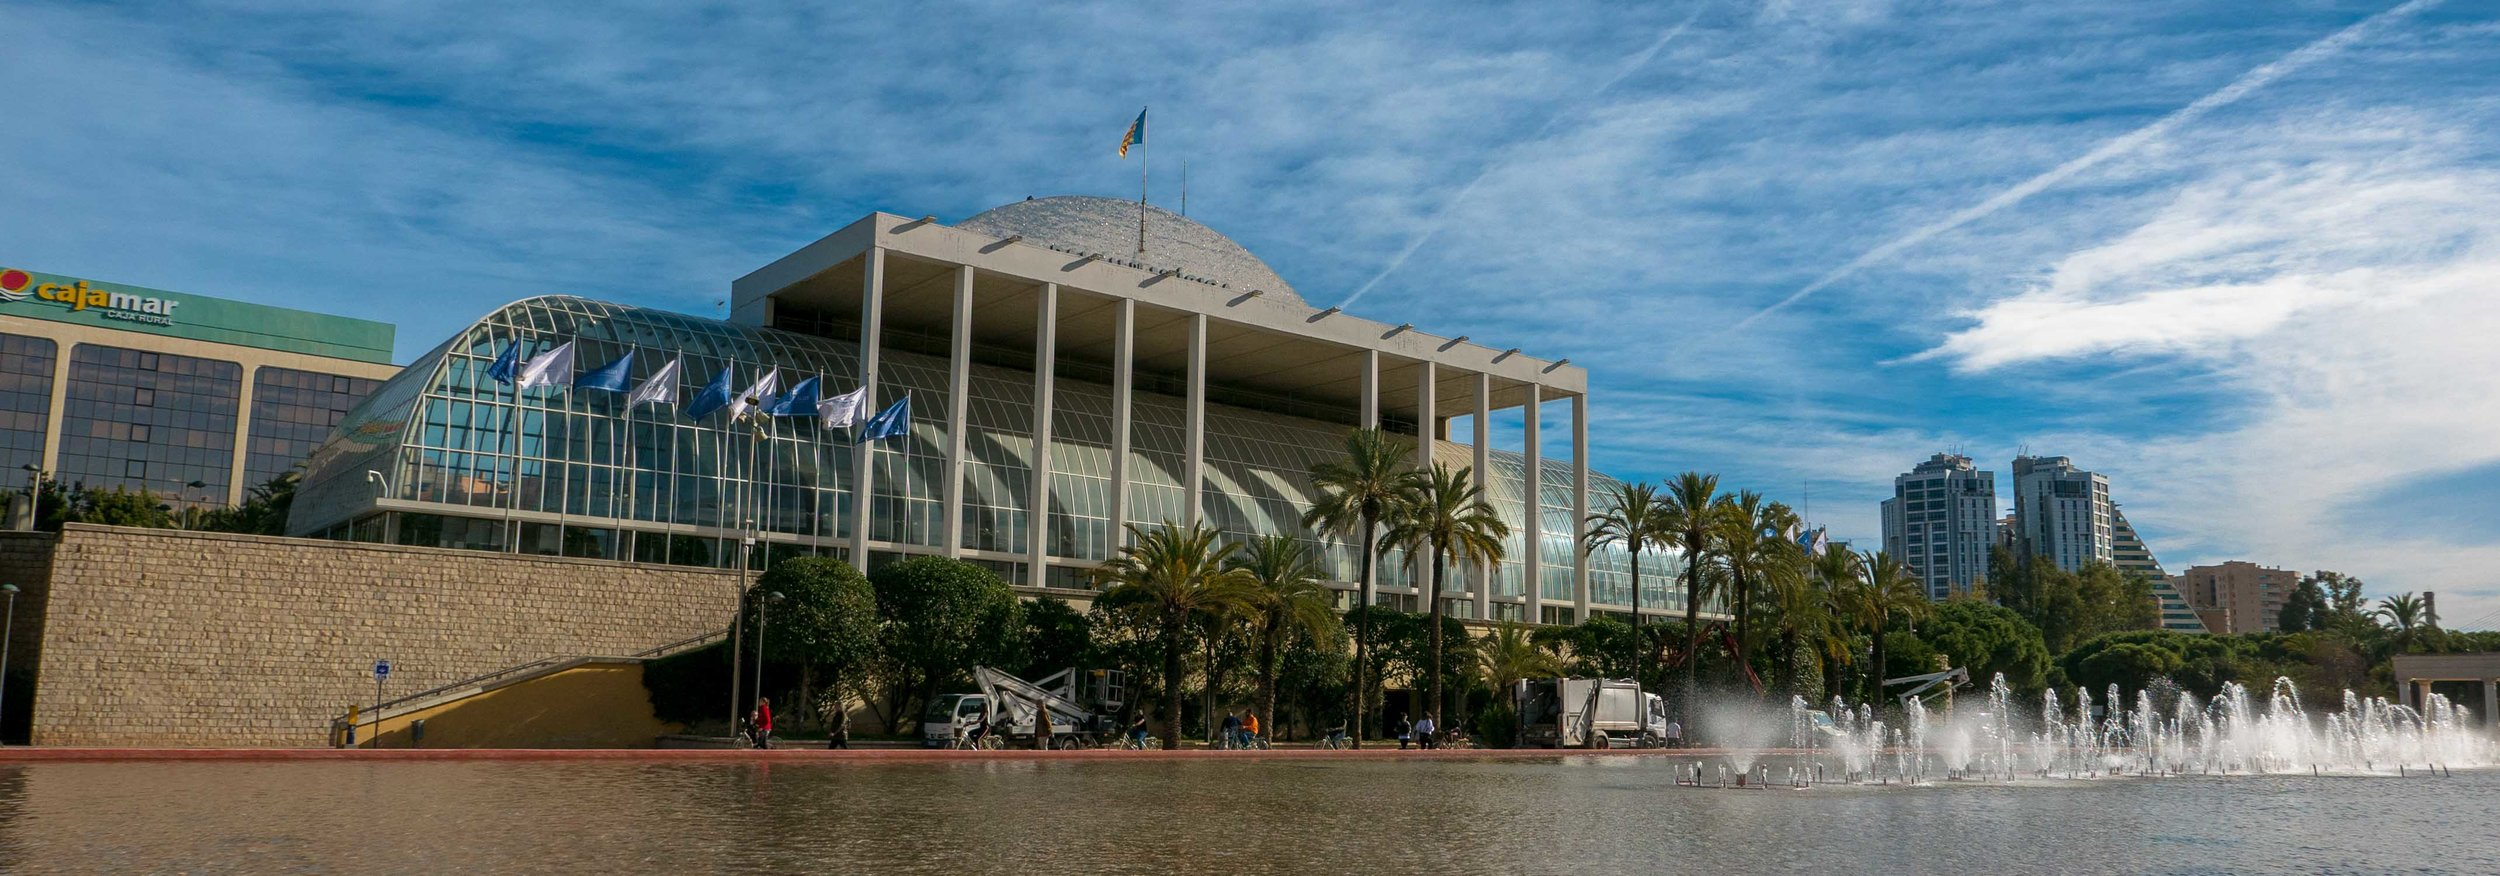 Home of the Valencia Symphony. Concert tickets start at 10 euros (about 12 dollars.)